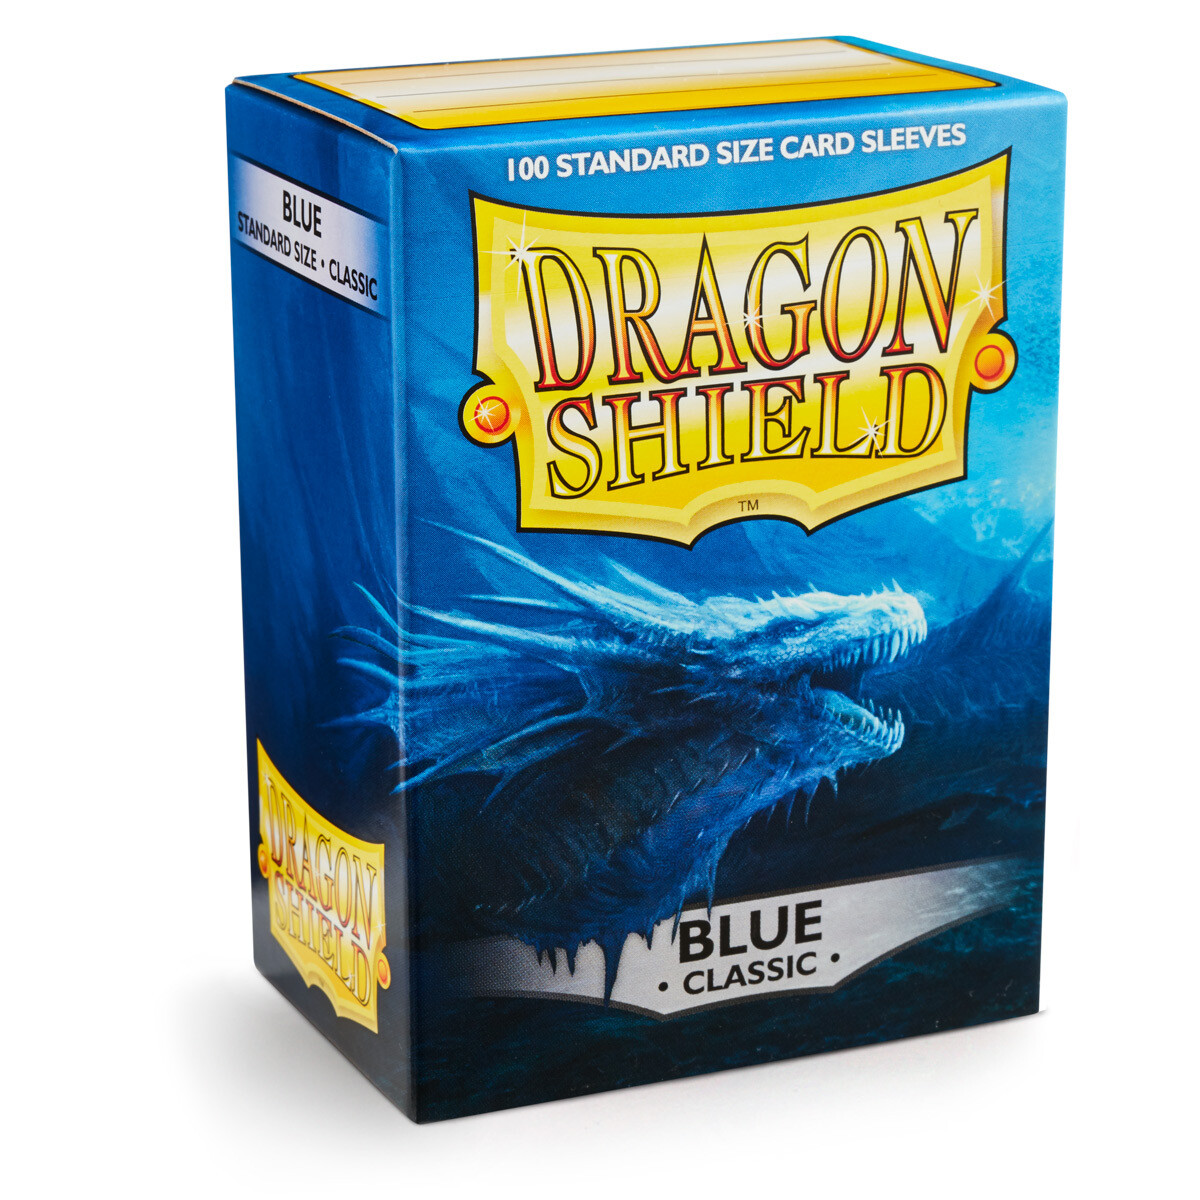 Dragon Shield 100 Sleeves - Blue